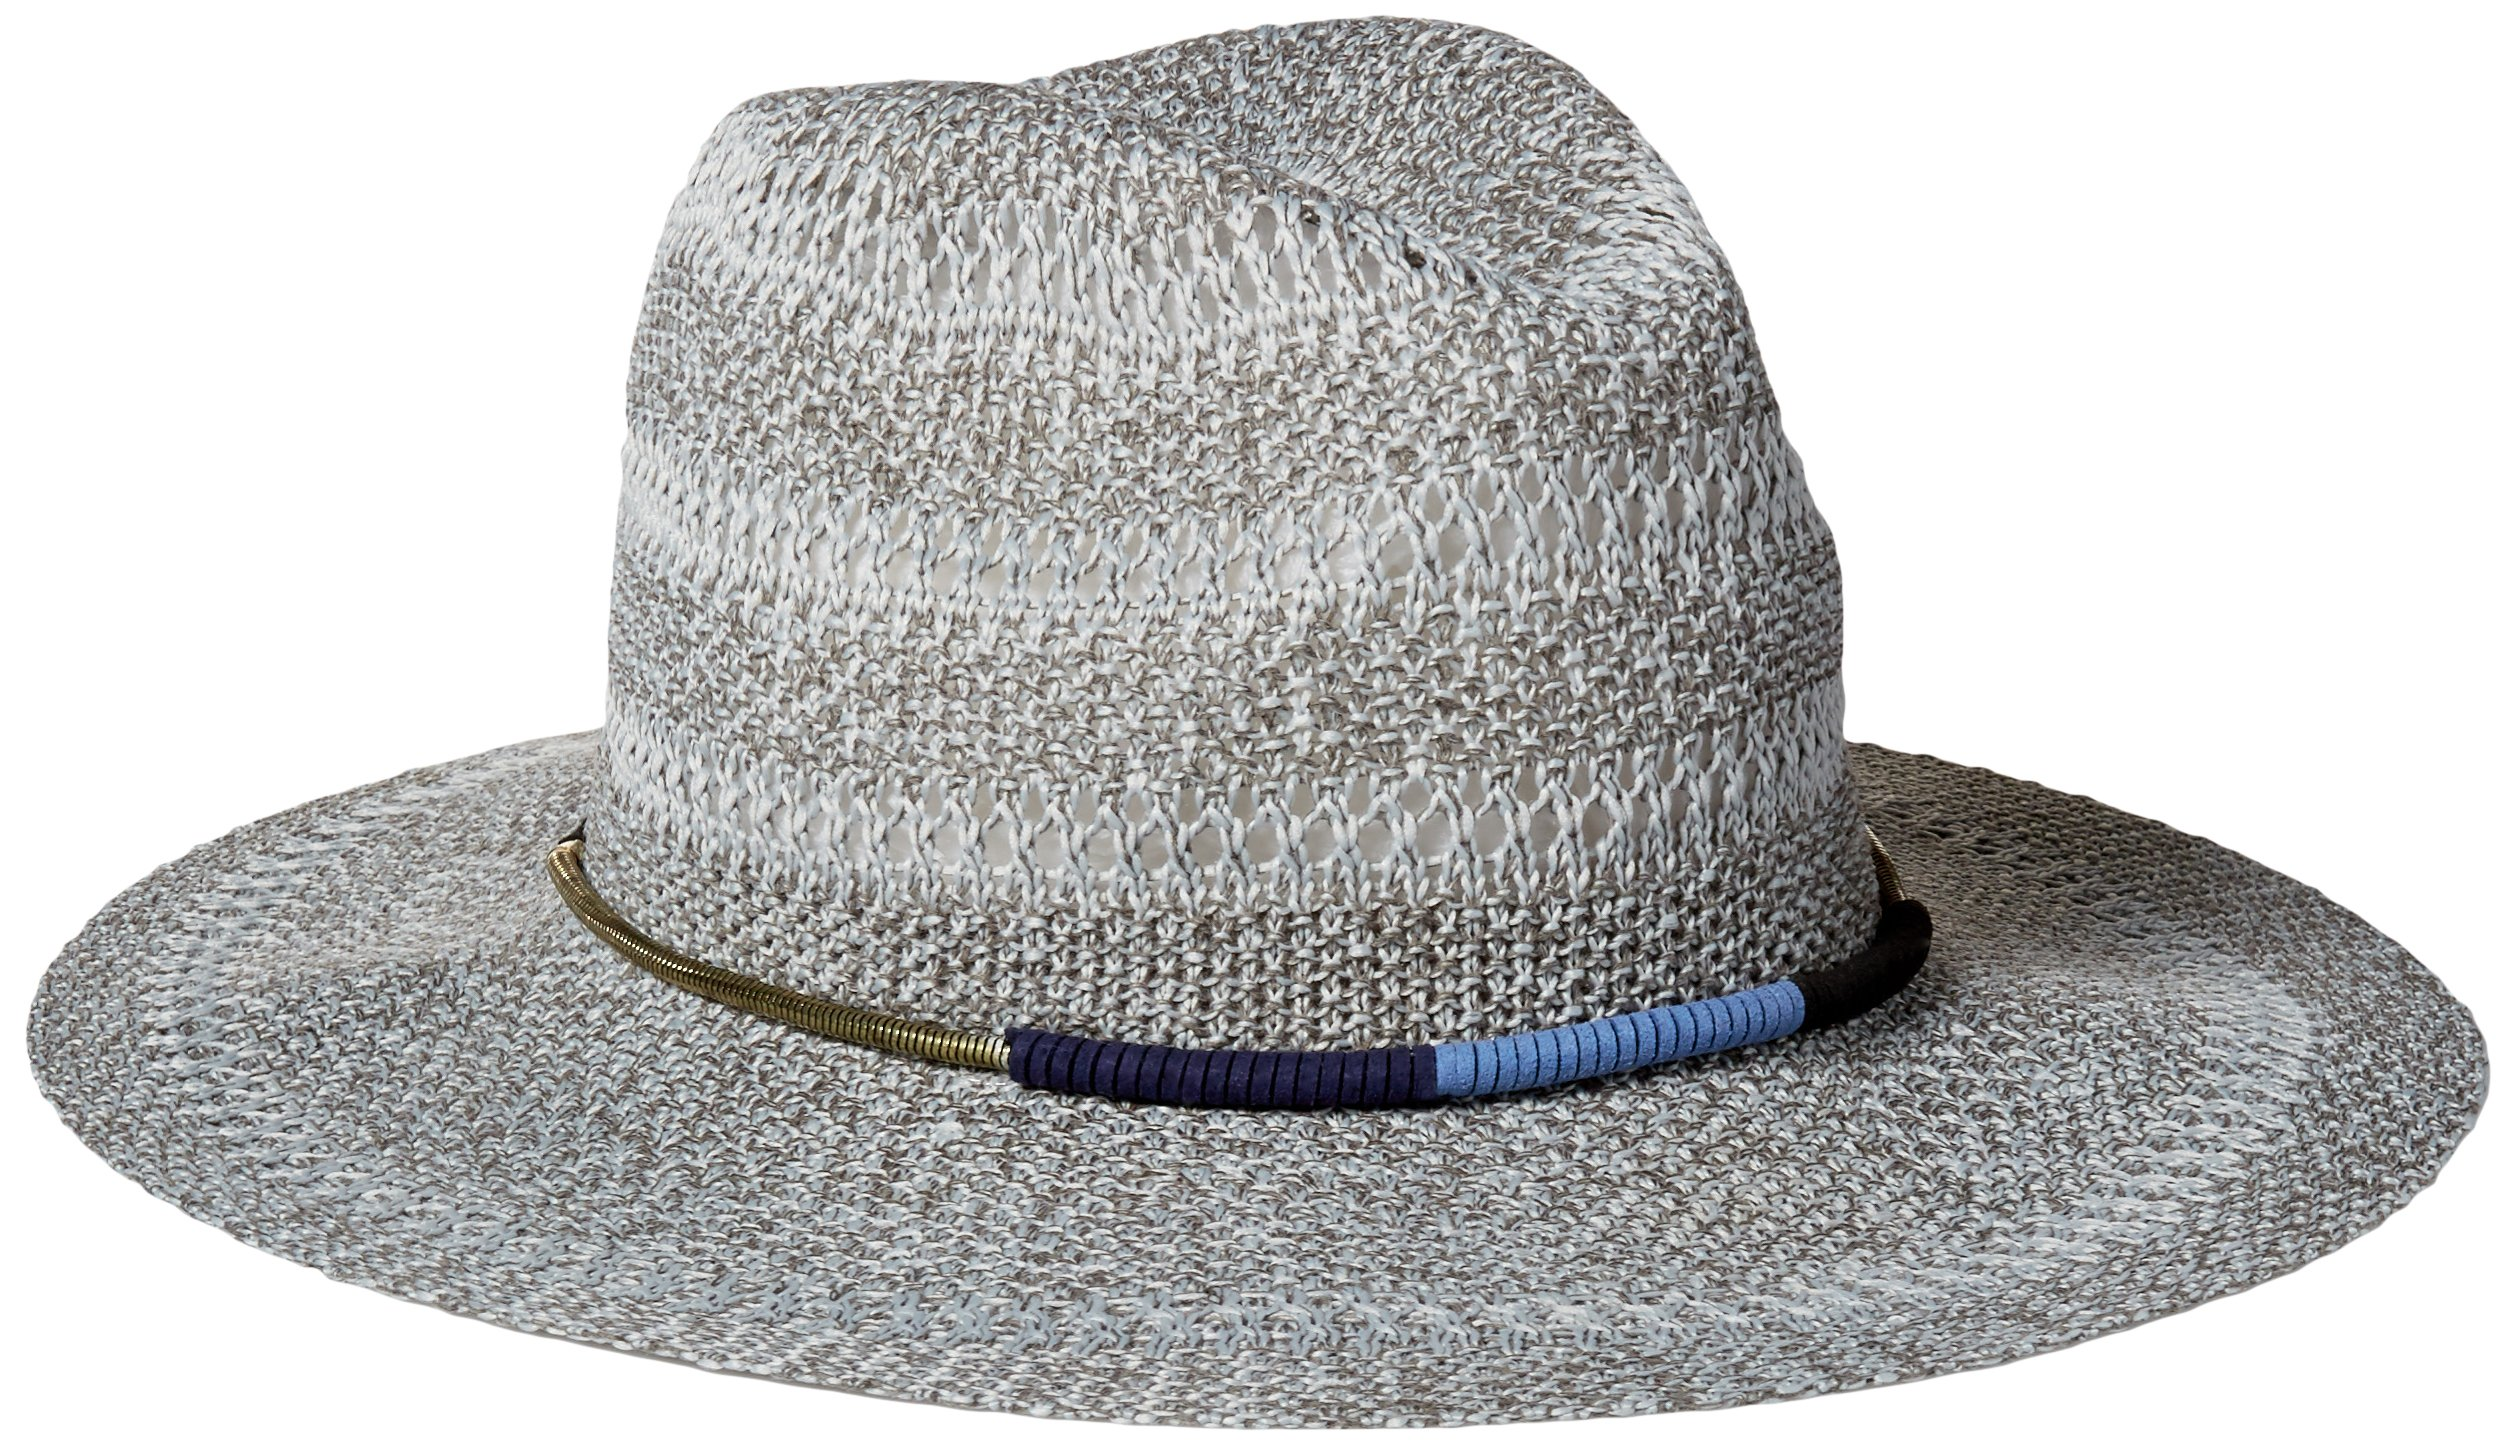 San Diego Hat Company Women's Knitted Panama Fedora Hat with Gold Cord Trim, Grey, One Size